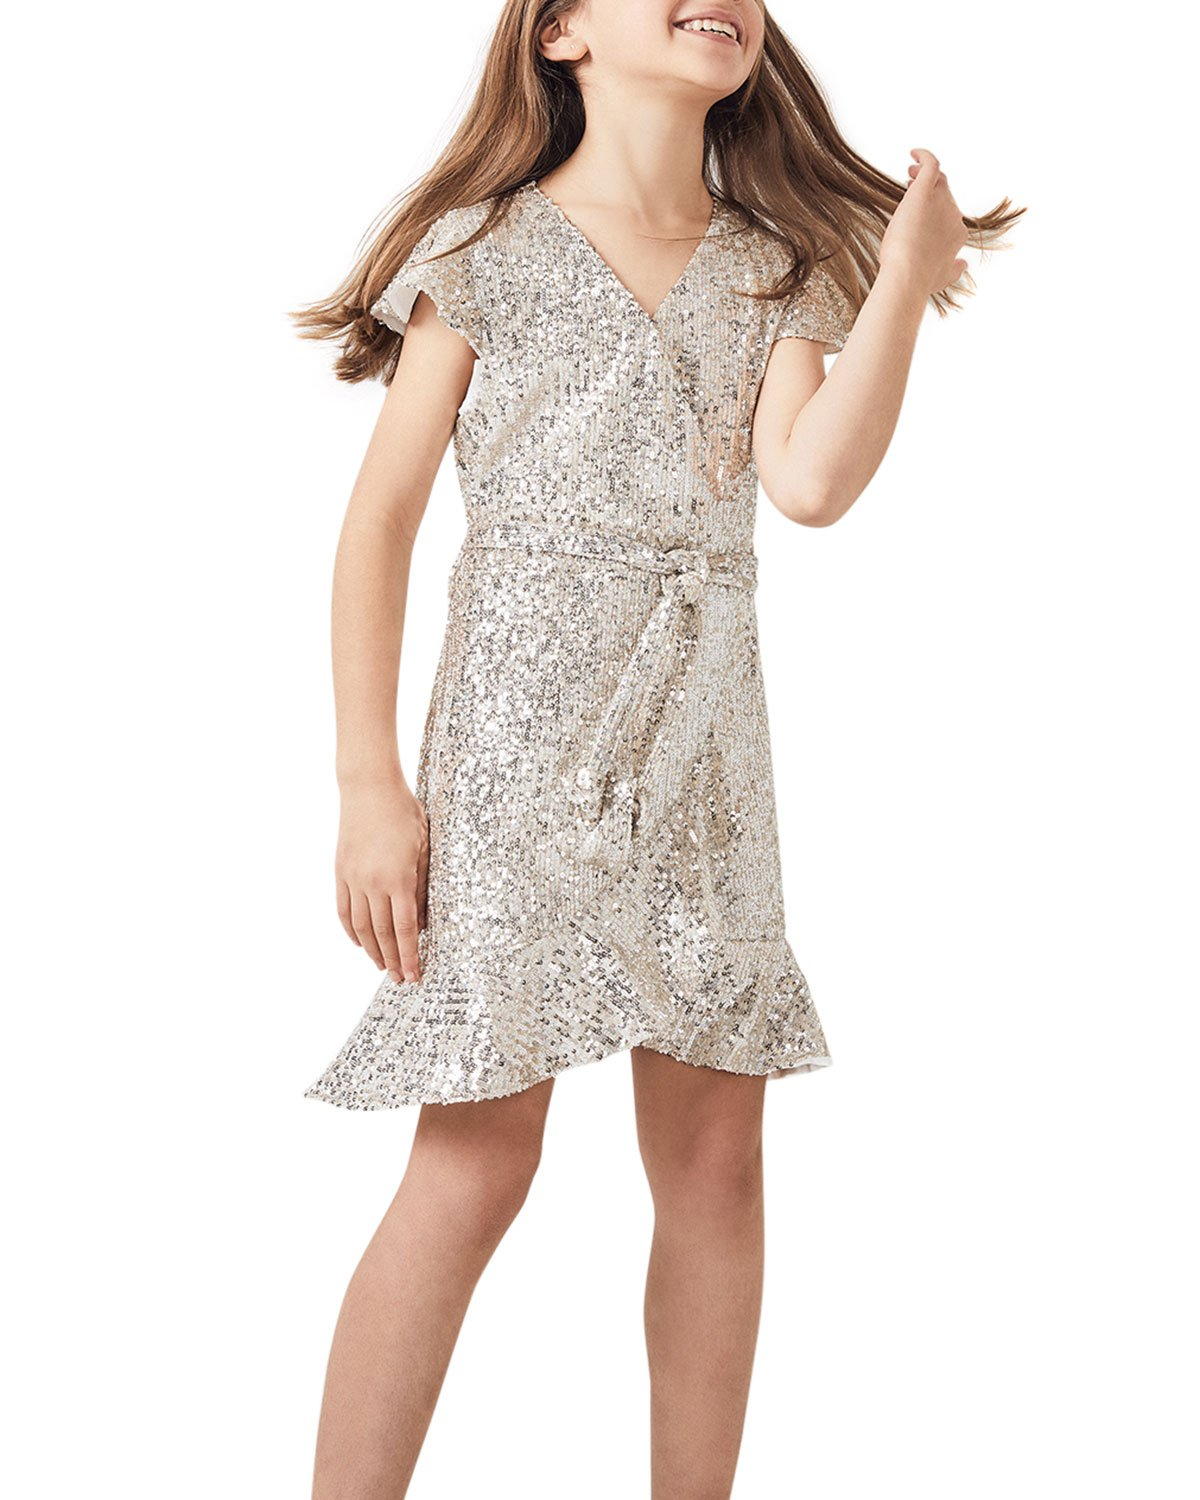 Bardot Junior Girl's Sequined Faux-Wrap Ruffle Dress, Size 4-7